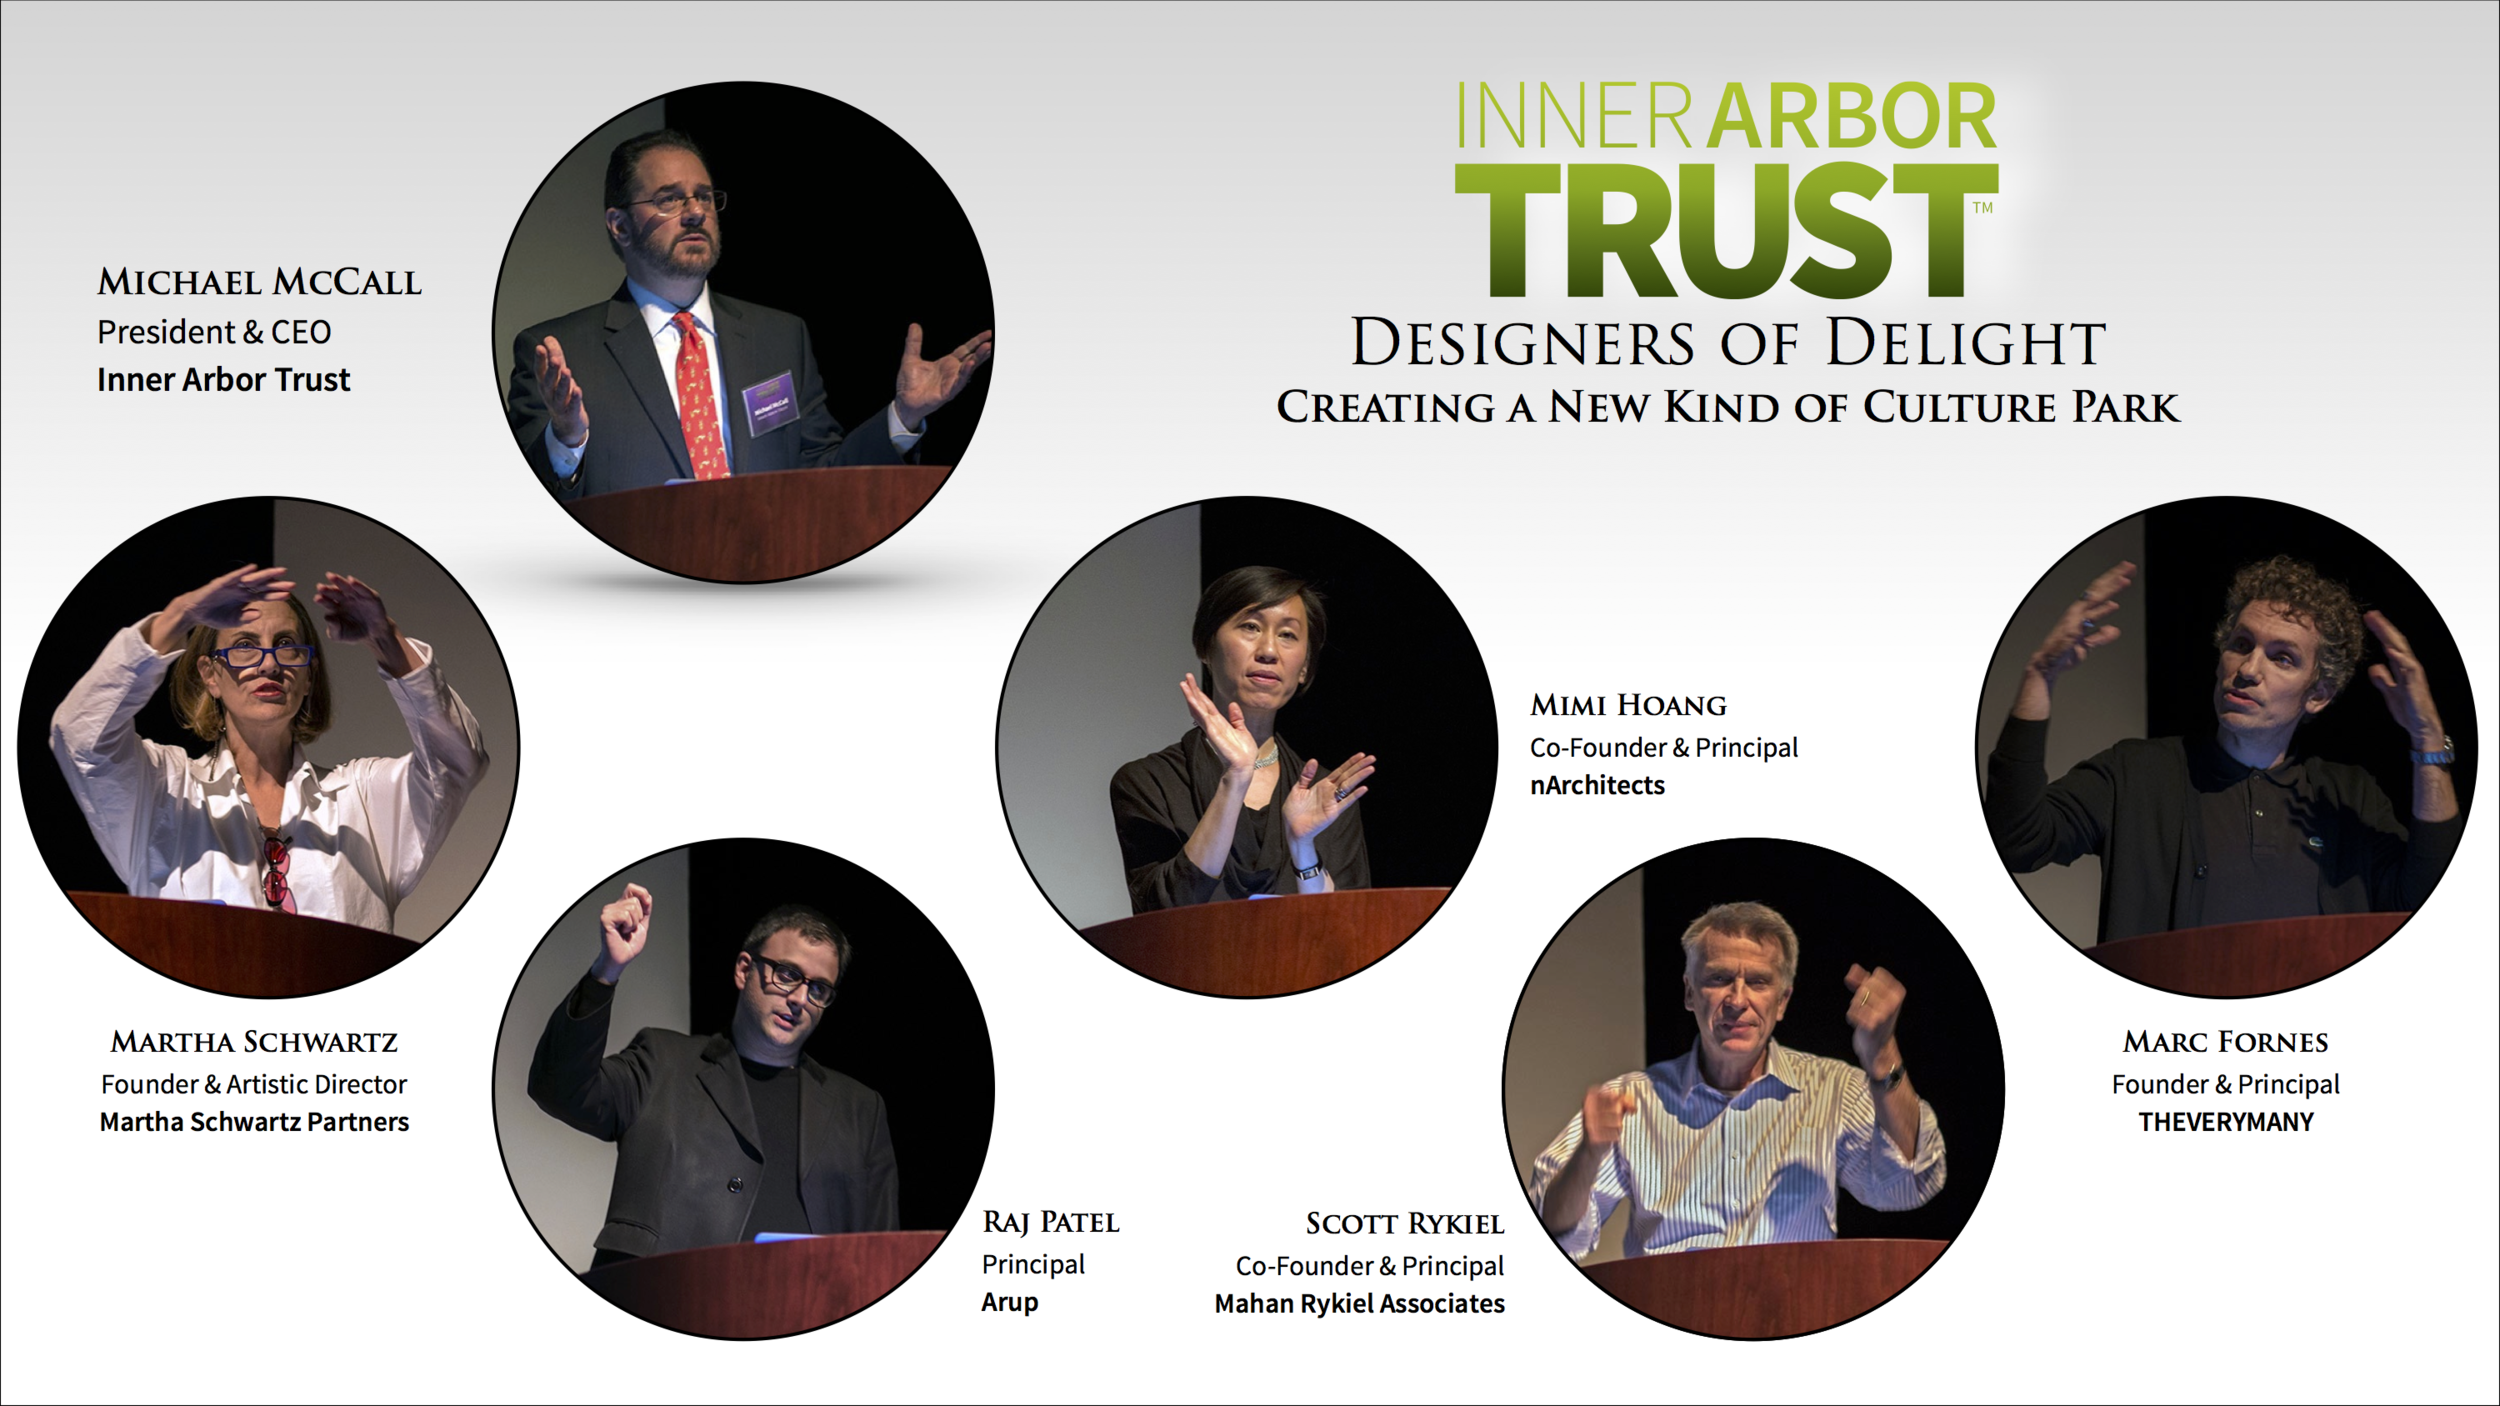 Hosted by Michael MCall, President & CEO of the Inner Arbor Trust, The Designers of Delight, presented the essence of their creative careers, prior to presenting the the Park plan, two weeks later